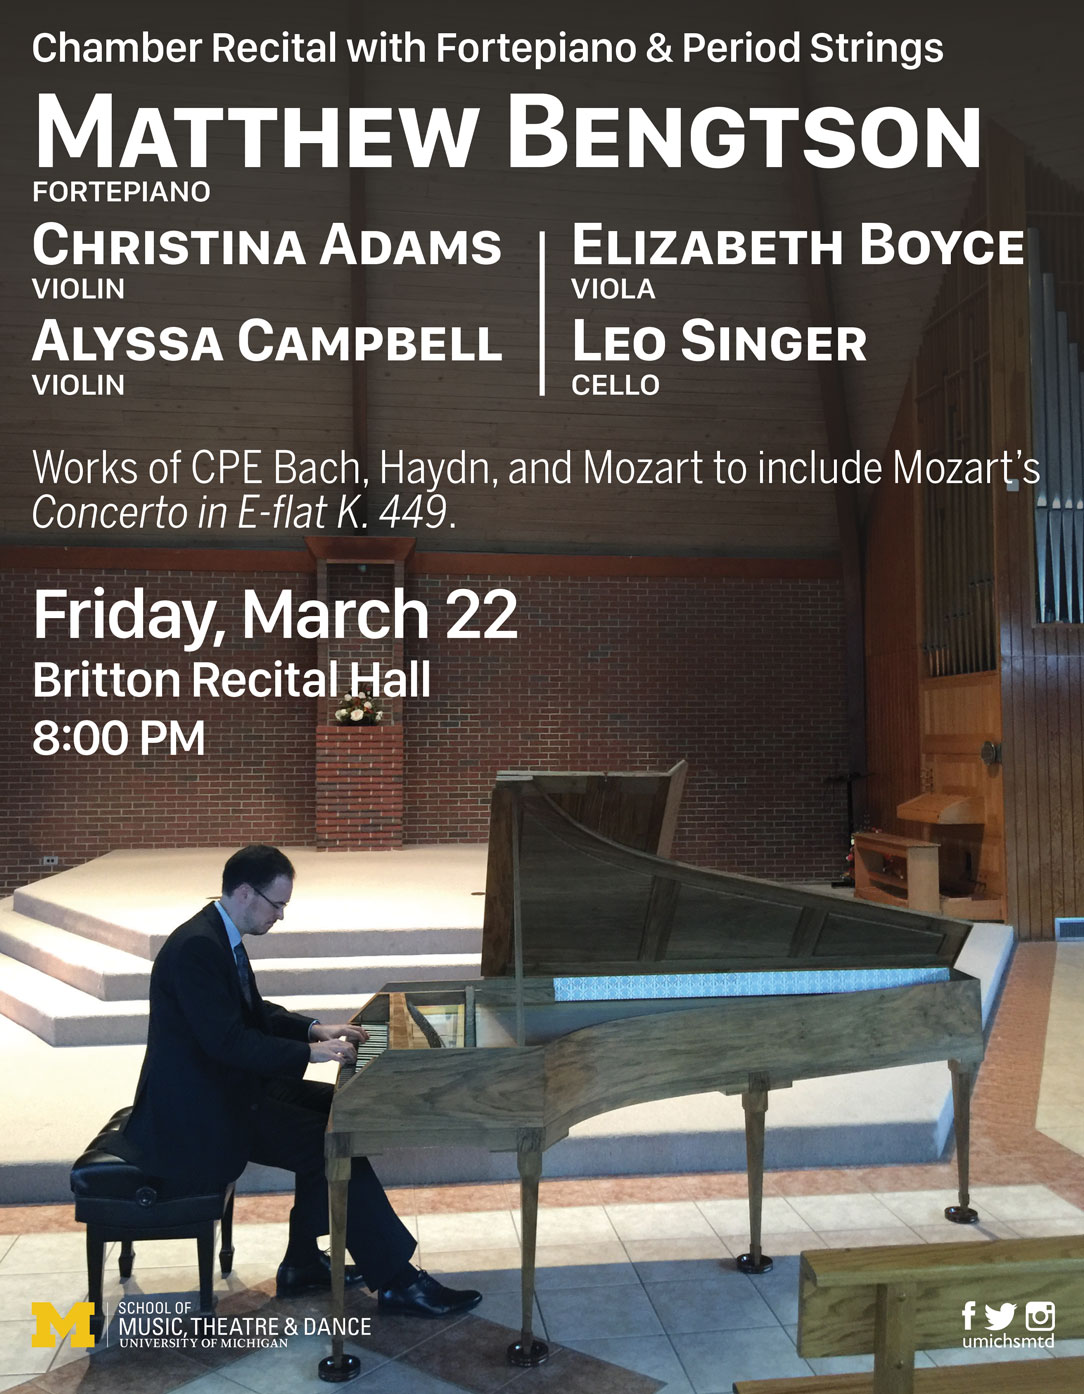 Faculty Recital: Matthew Bengtson, fortepiano, with period strings